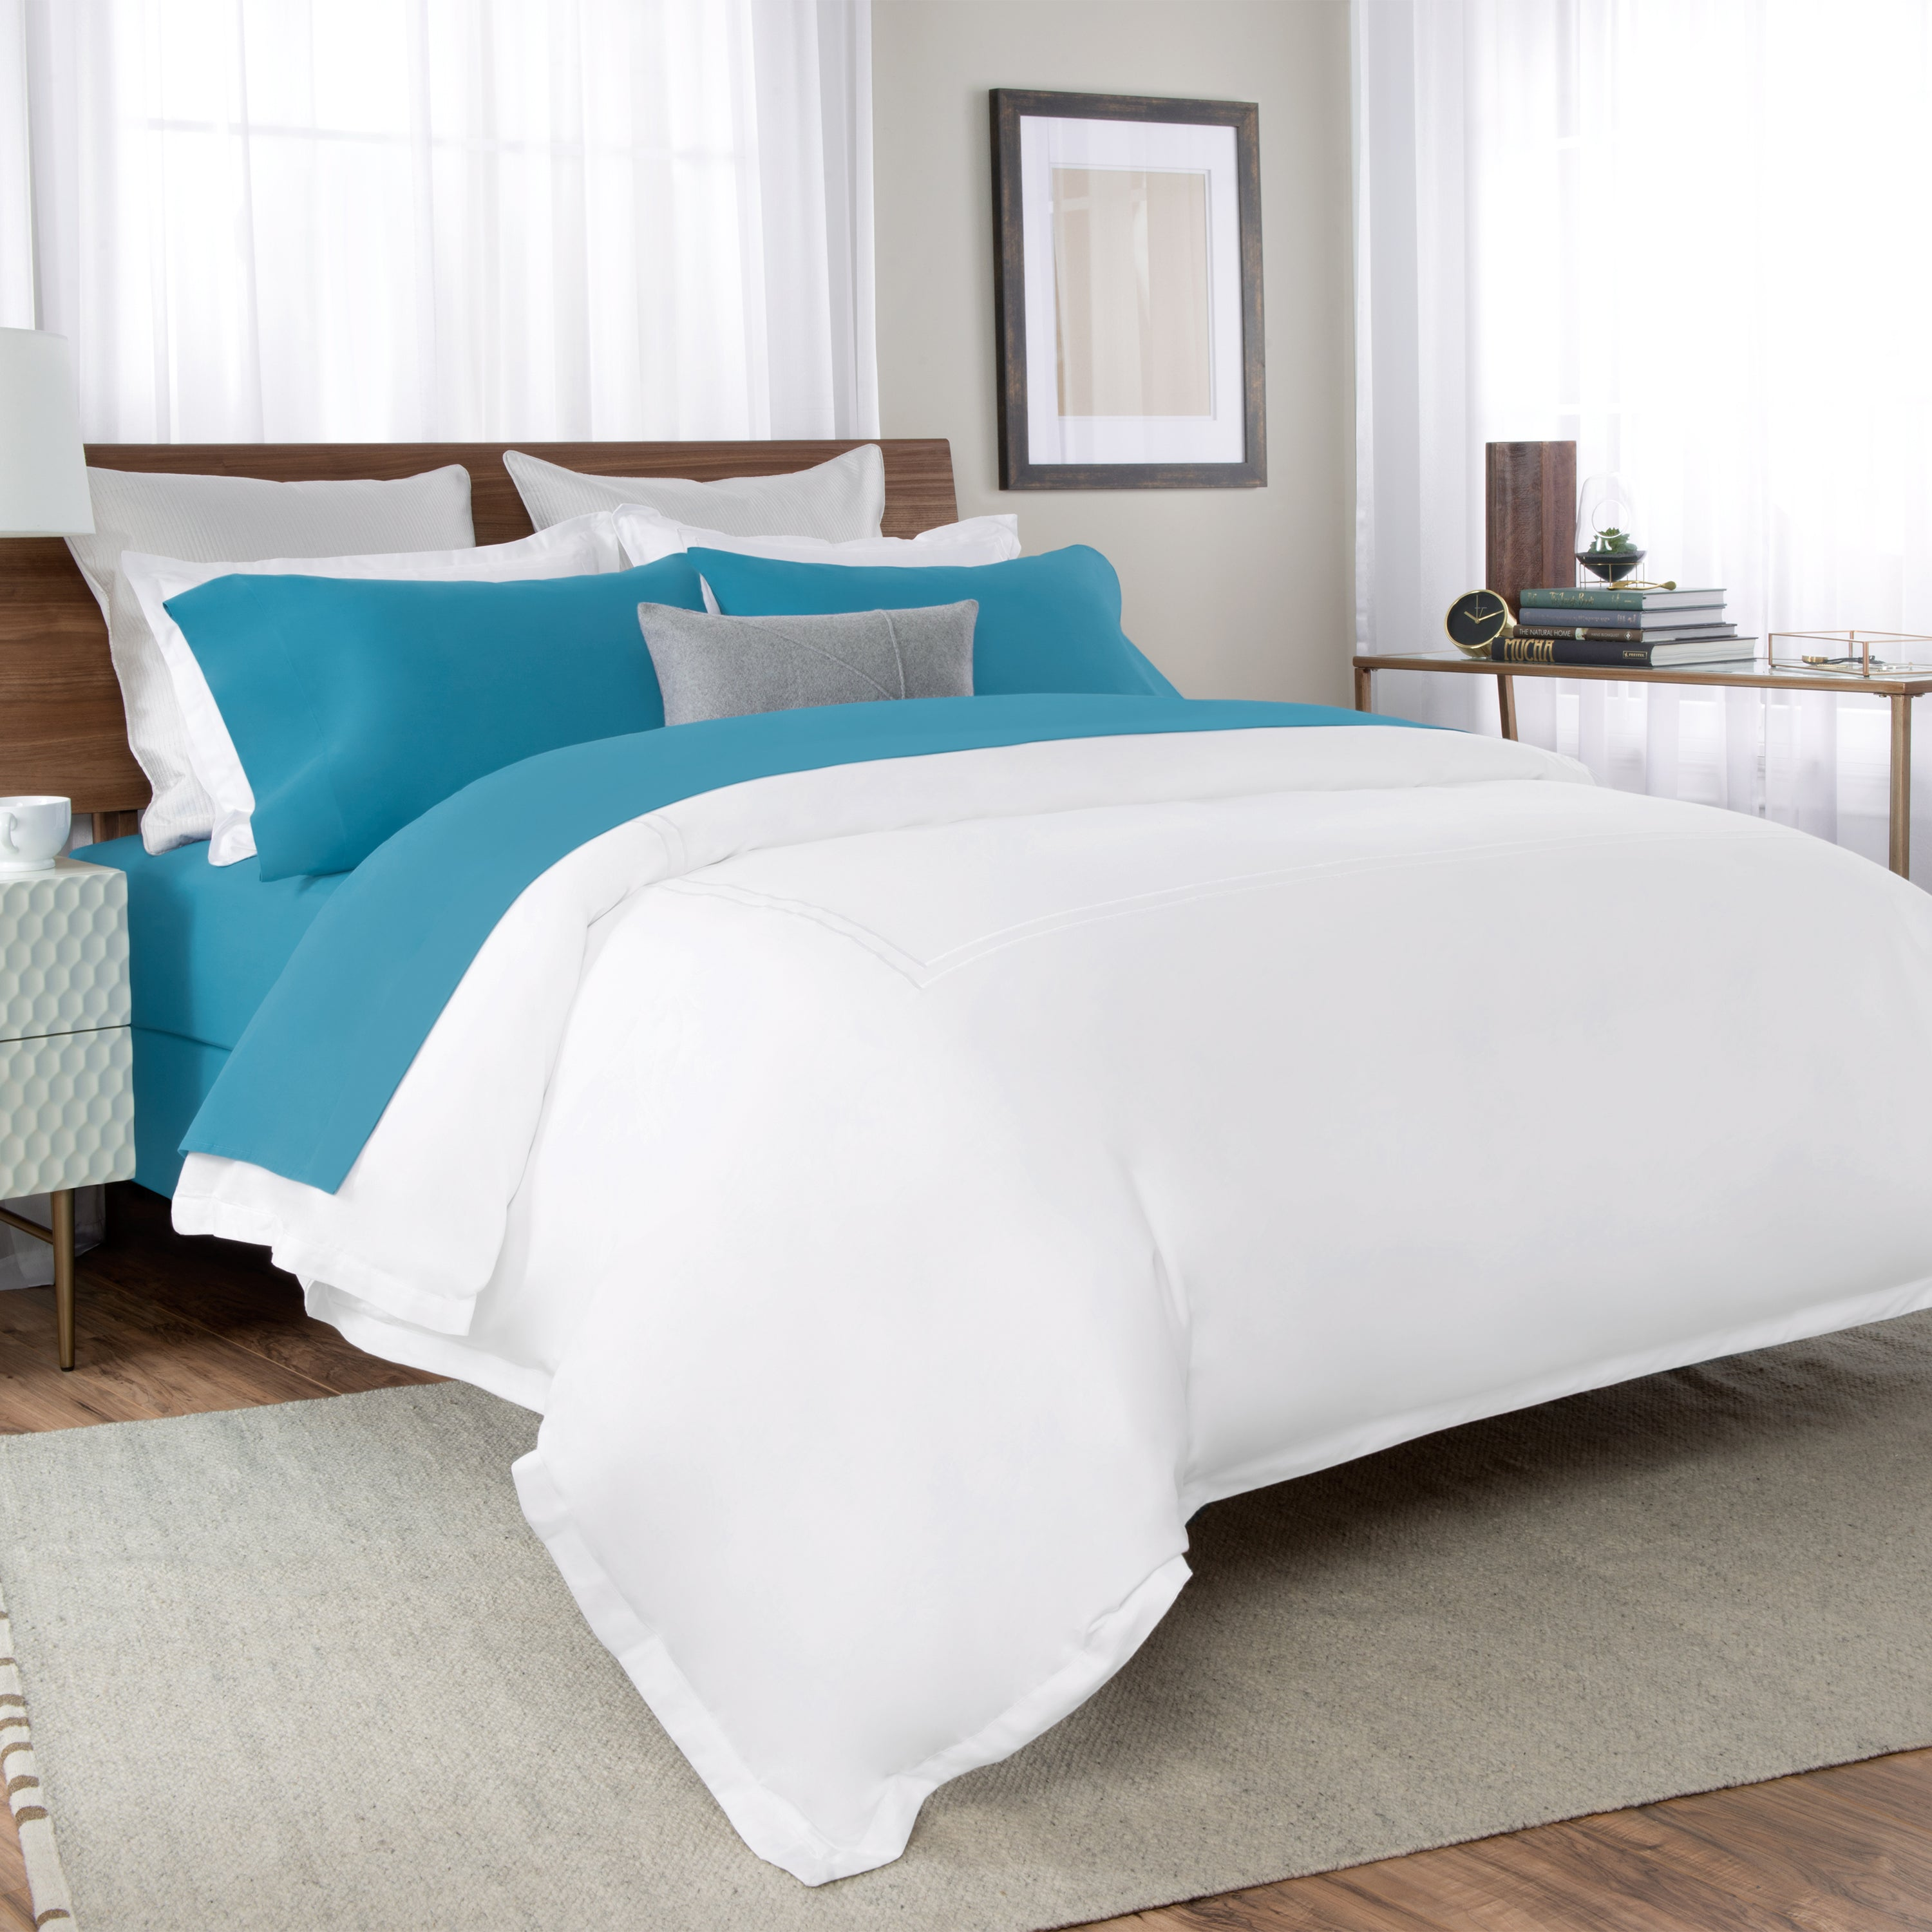 to stack blue touch cotton fitted buy set comfy goodbye the percale sleeps collections say sheets online bed cool sweaty crisp sheet best sets